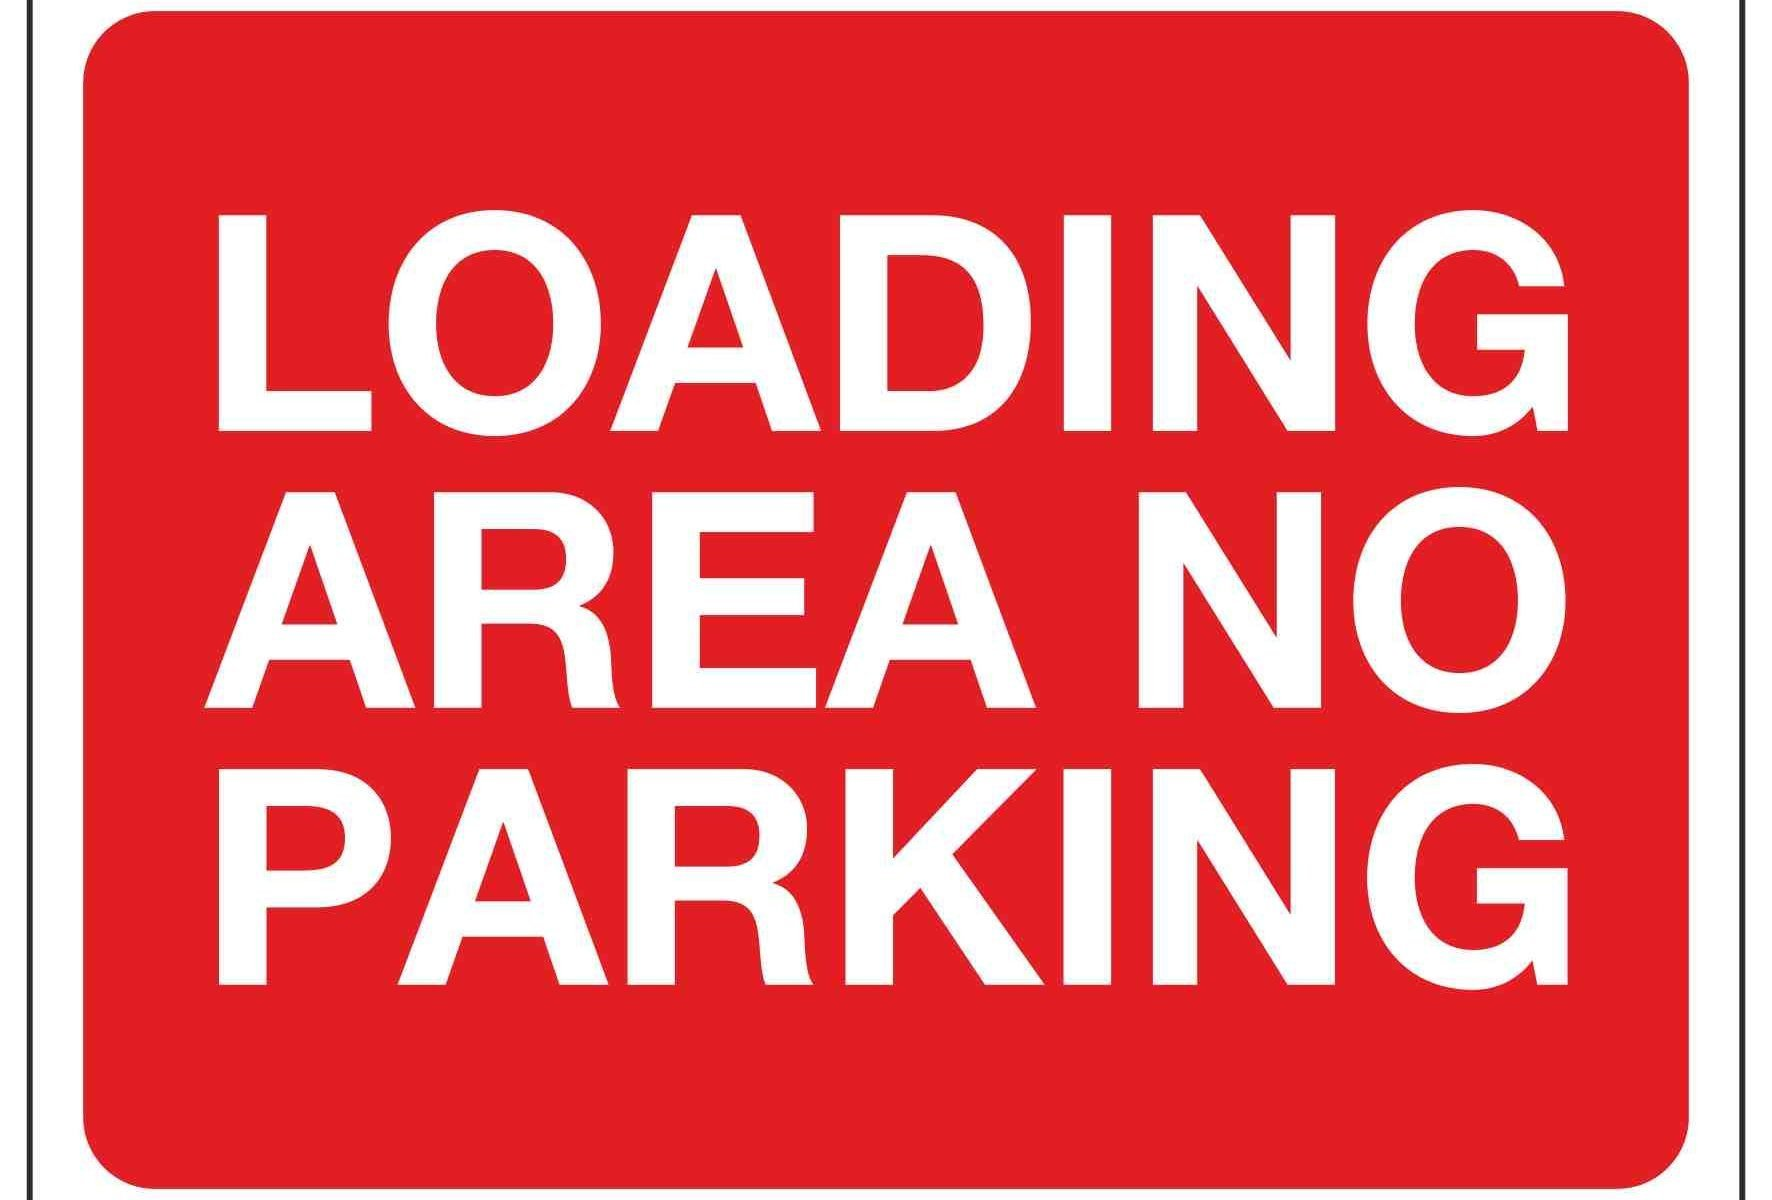 LOADING AREA NO PARKING